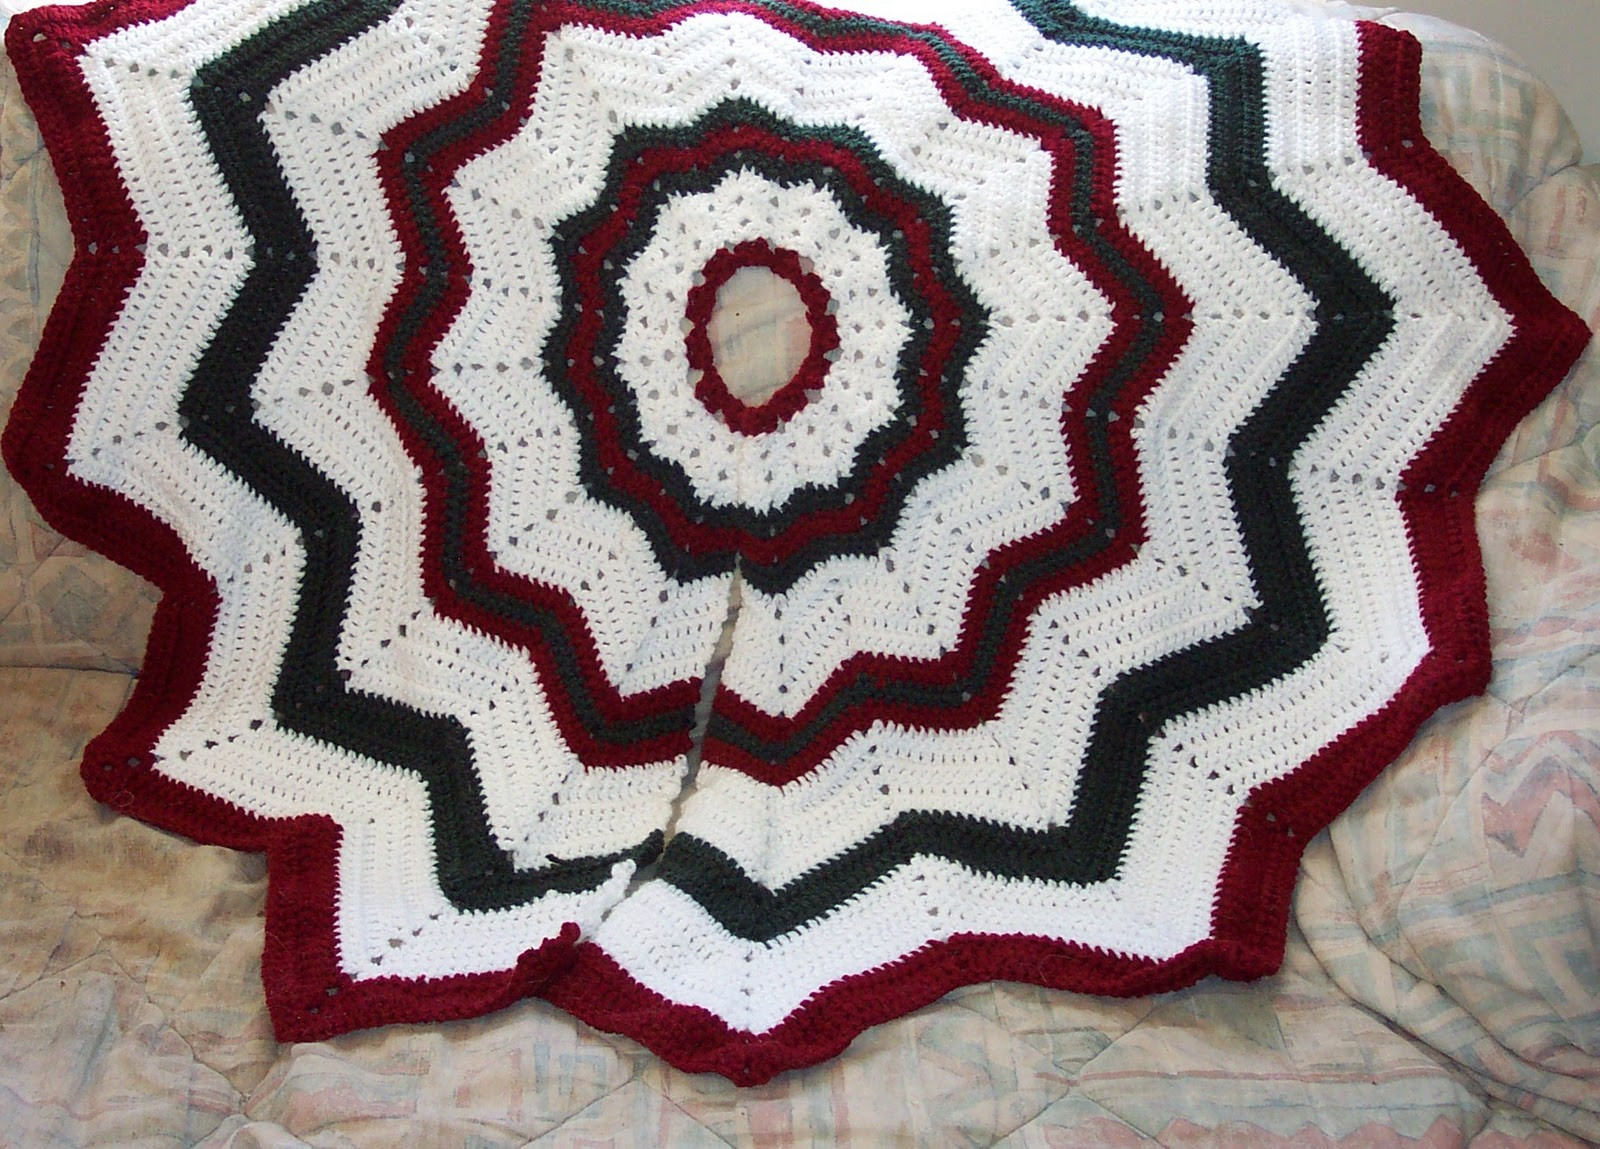 Crochet Tree Skirt Pattern Inspirational Smoothfox Crochet and Knit Don T for the Christmas Of Beautiful 50 Ideas Crochet Tree Skirt Pattern